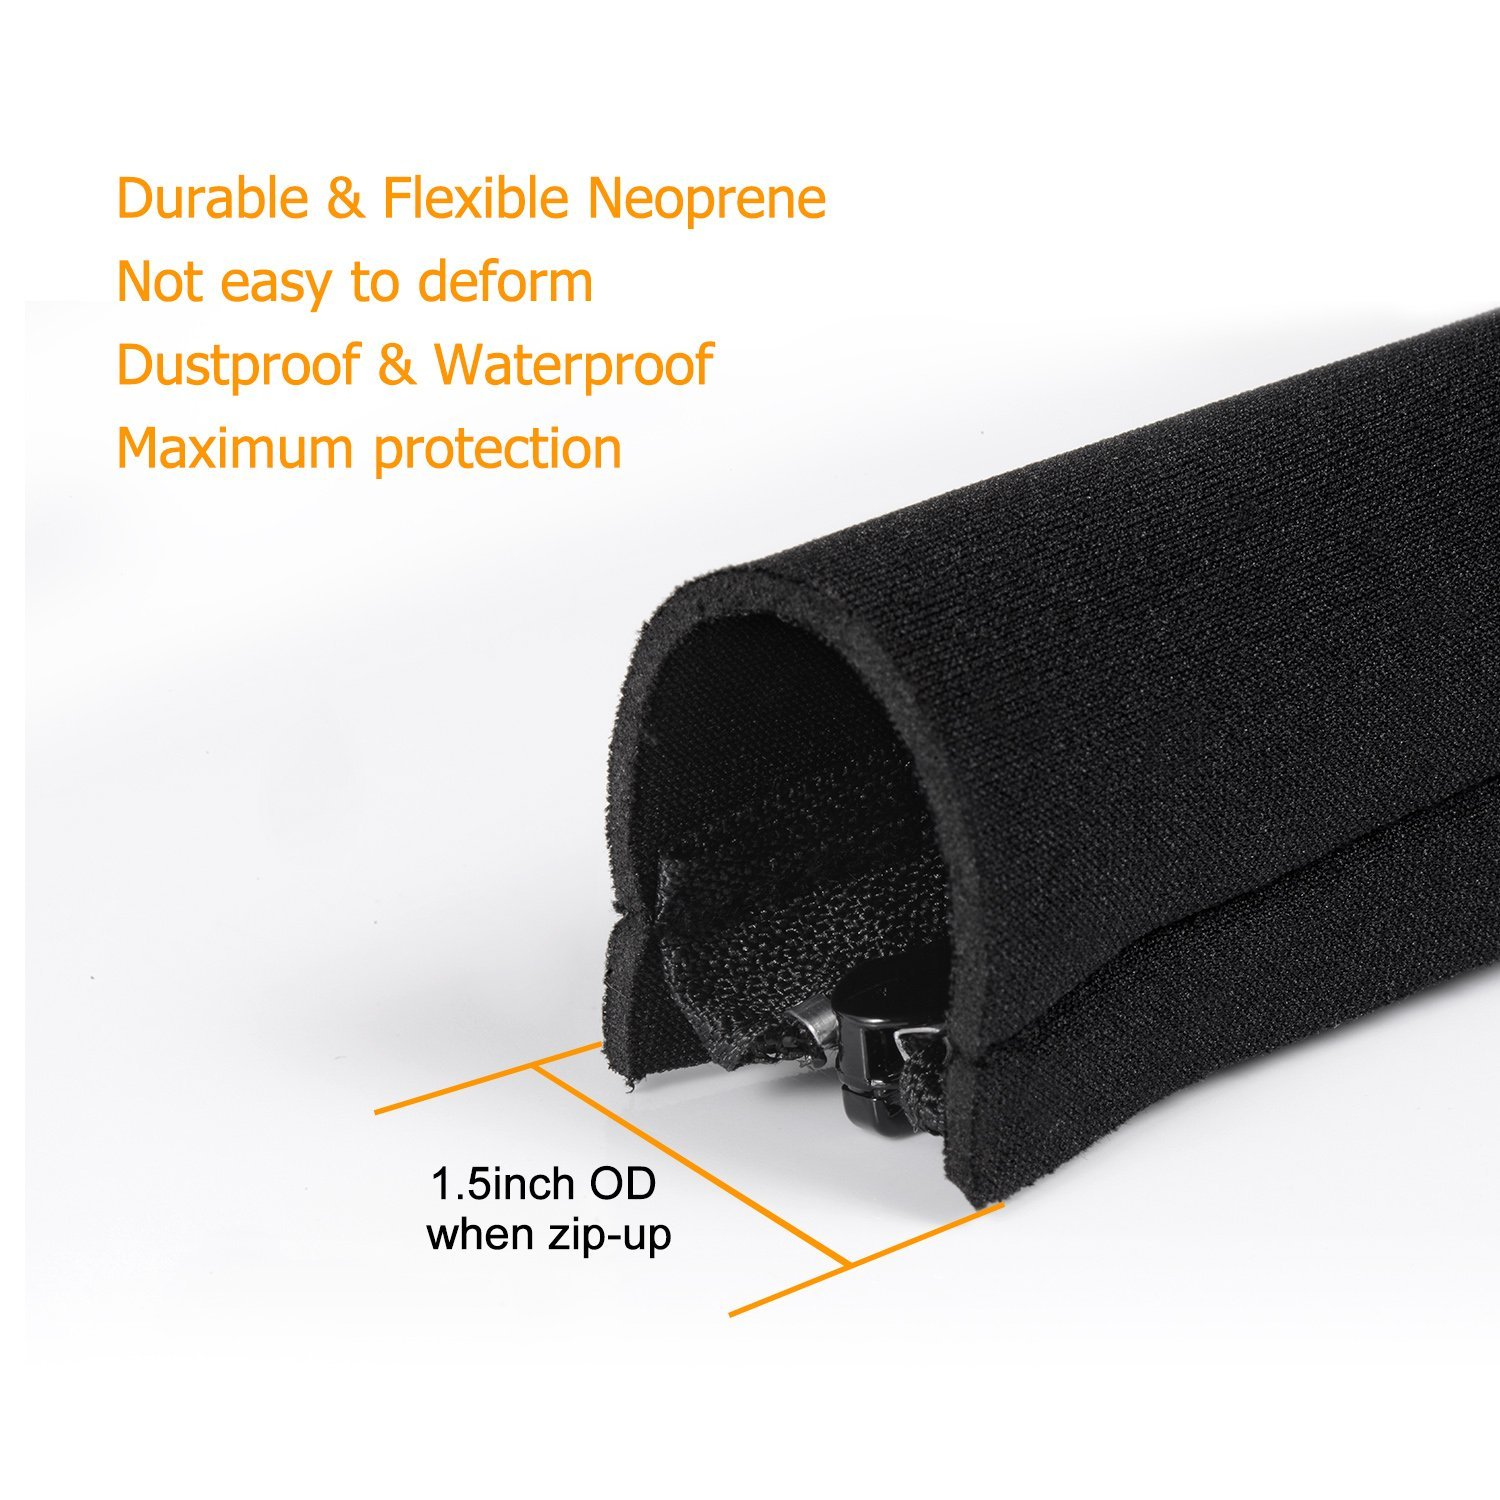 Flexible Neoprene Cable Organizer Wrap Cable Management Sleeve with Zipper